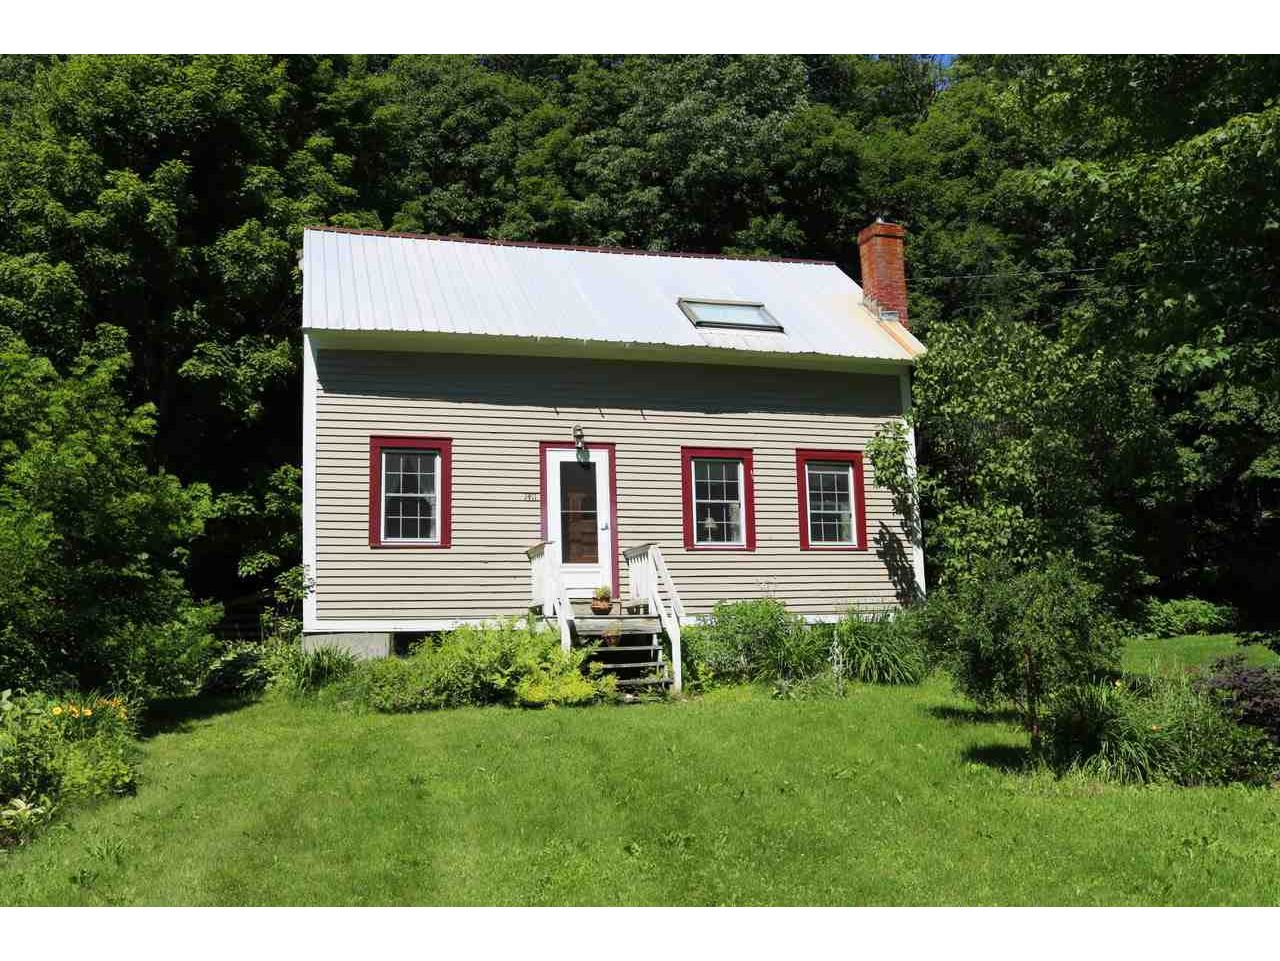 Sold property in Ripton